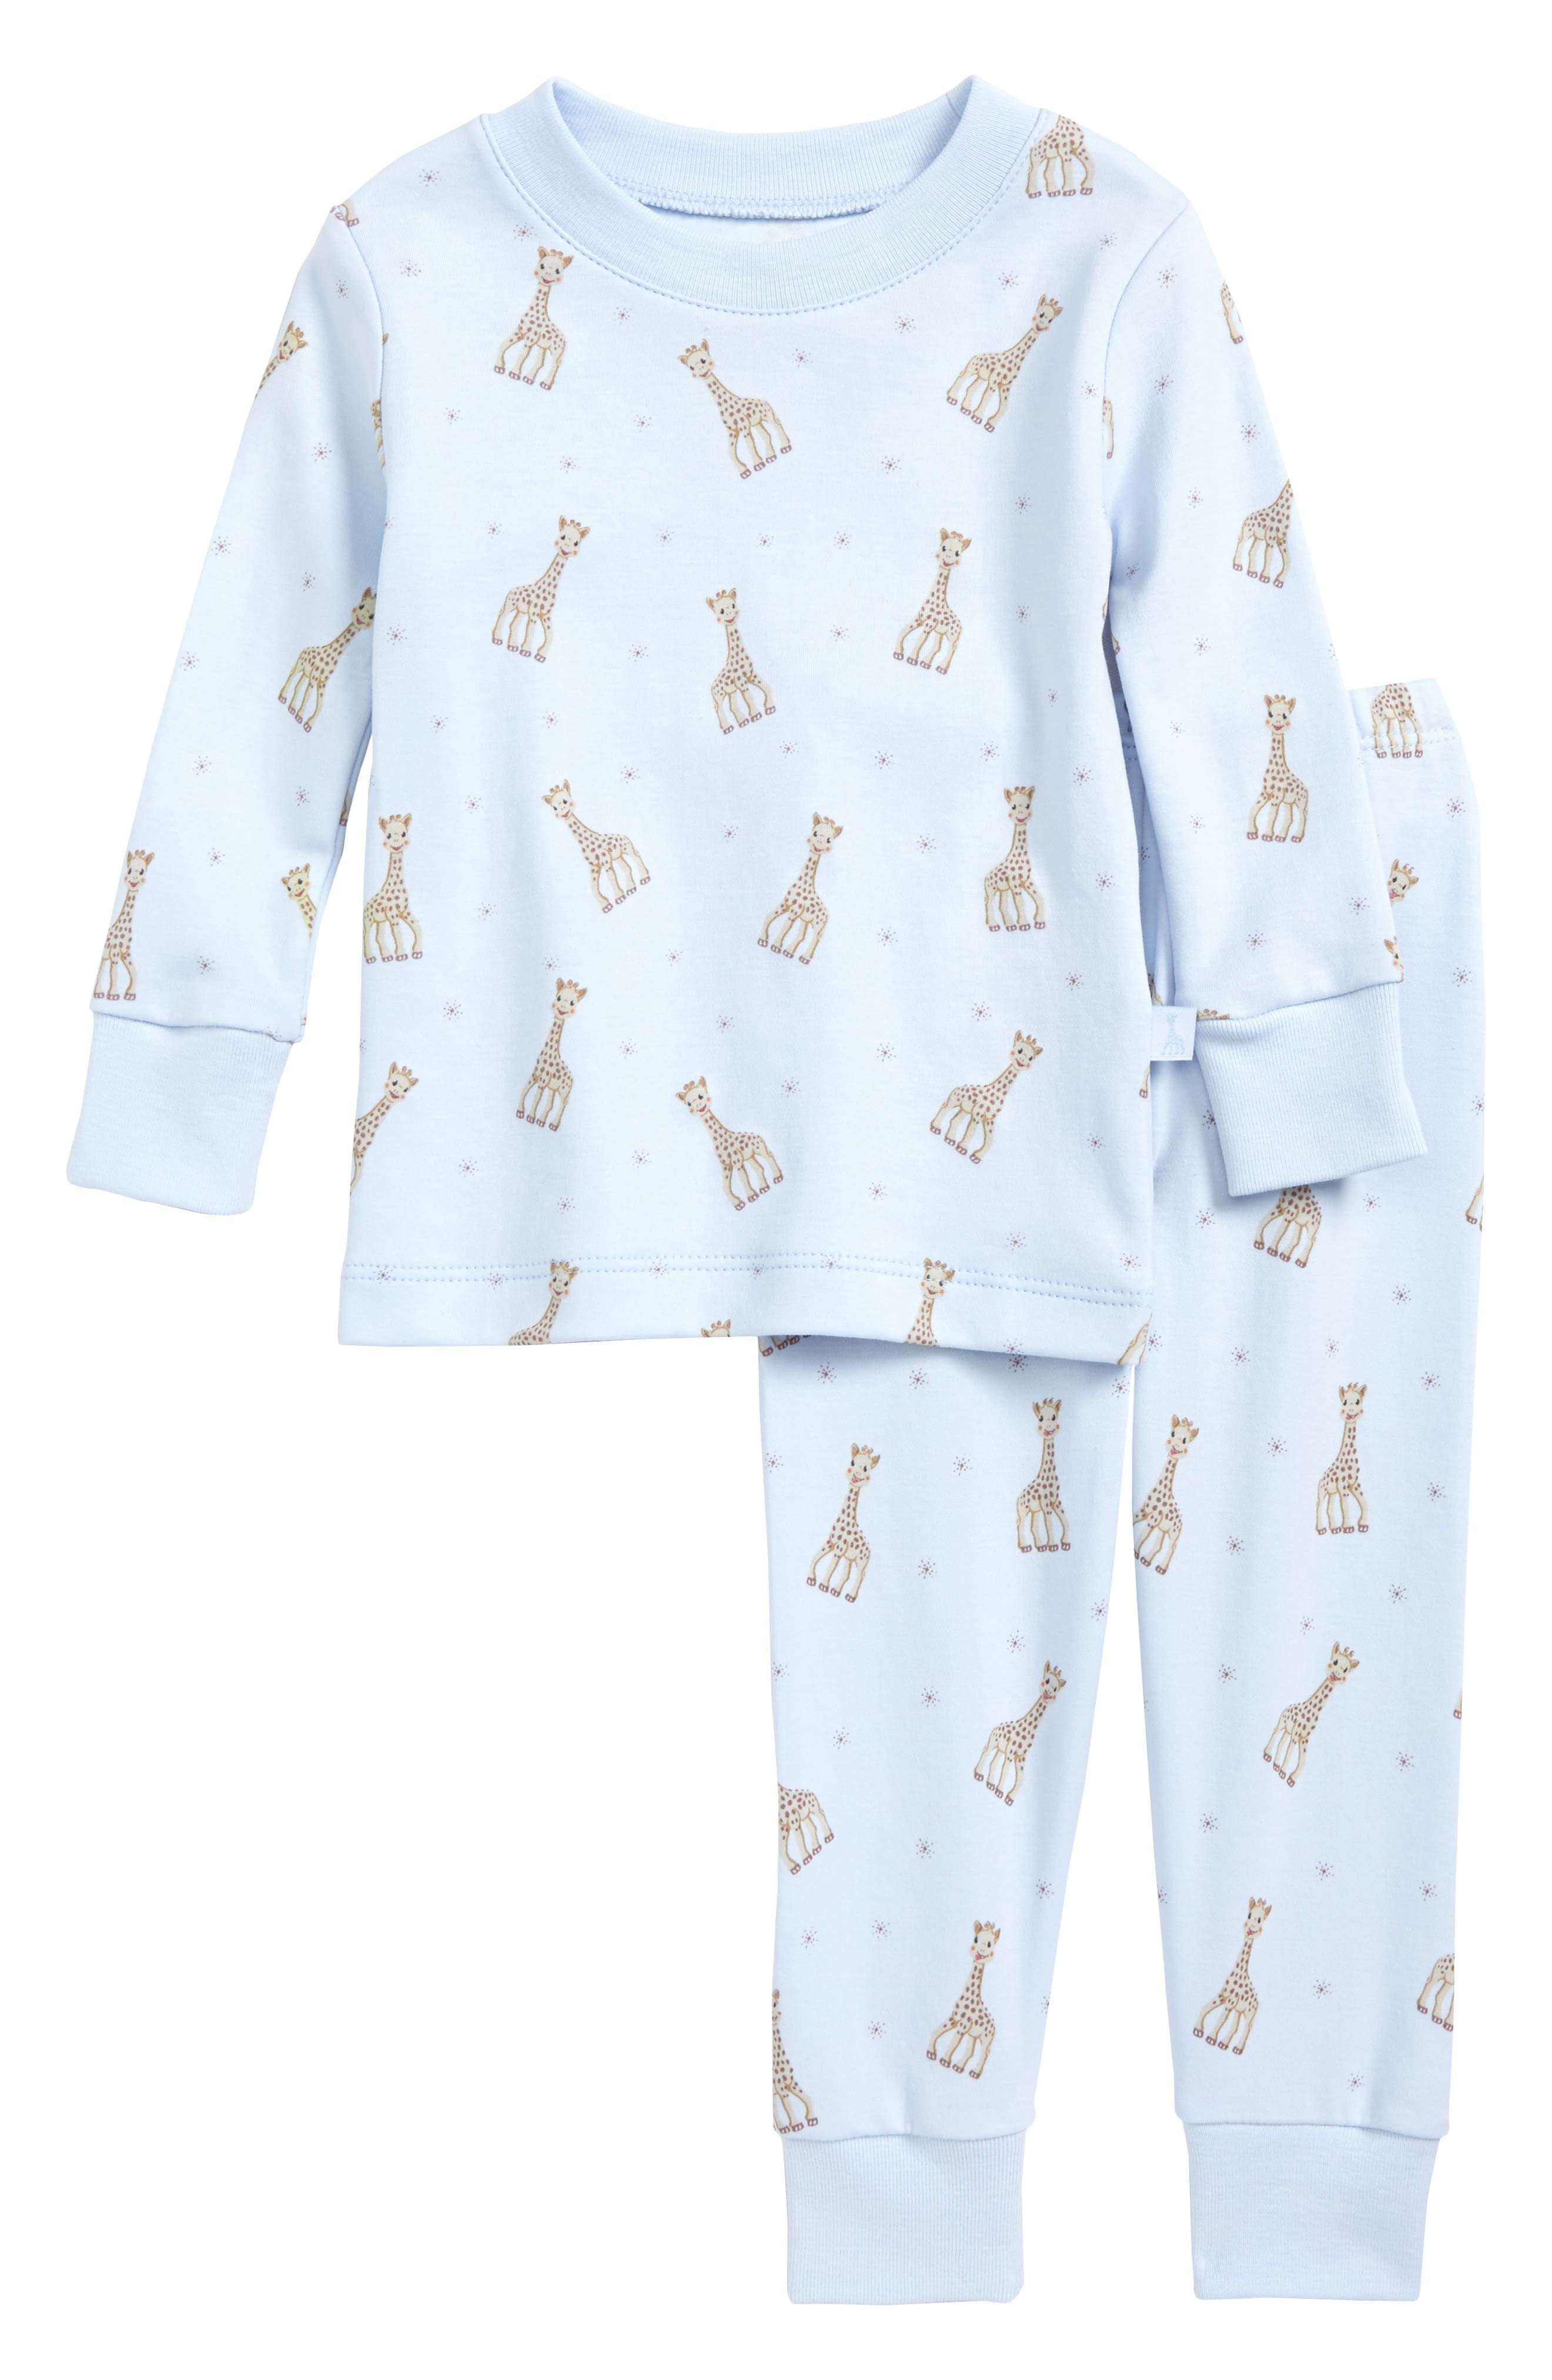 Sophie la Girafe Fitted Two-Piece Pajamas,                             Main thumbnail 1, color,                             Light Blue Print